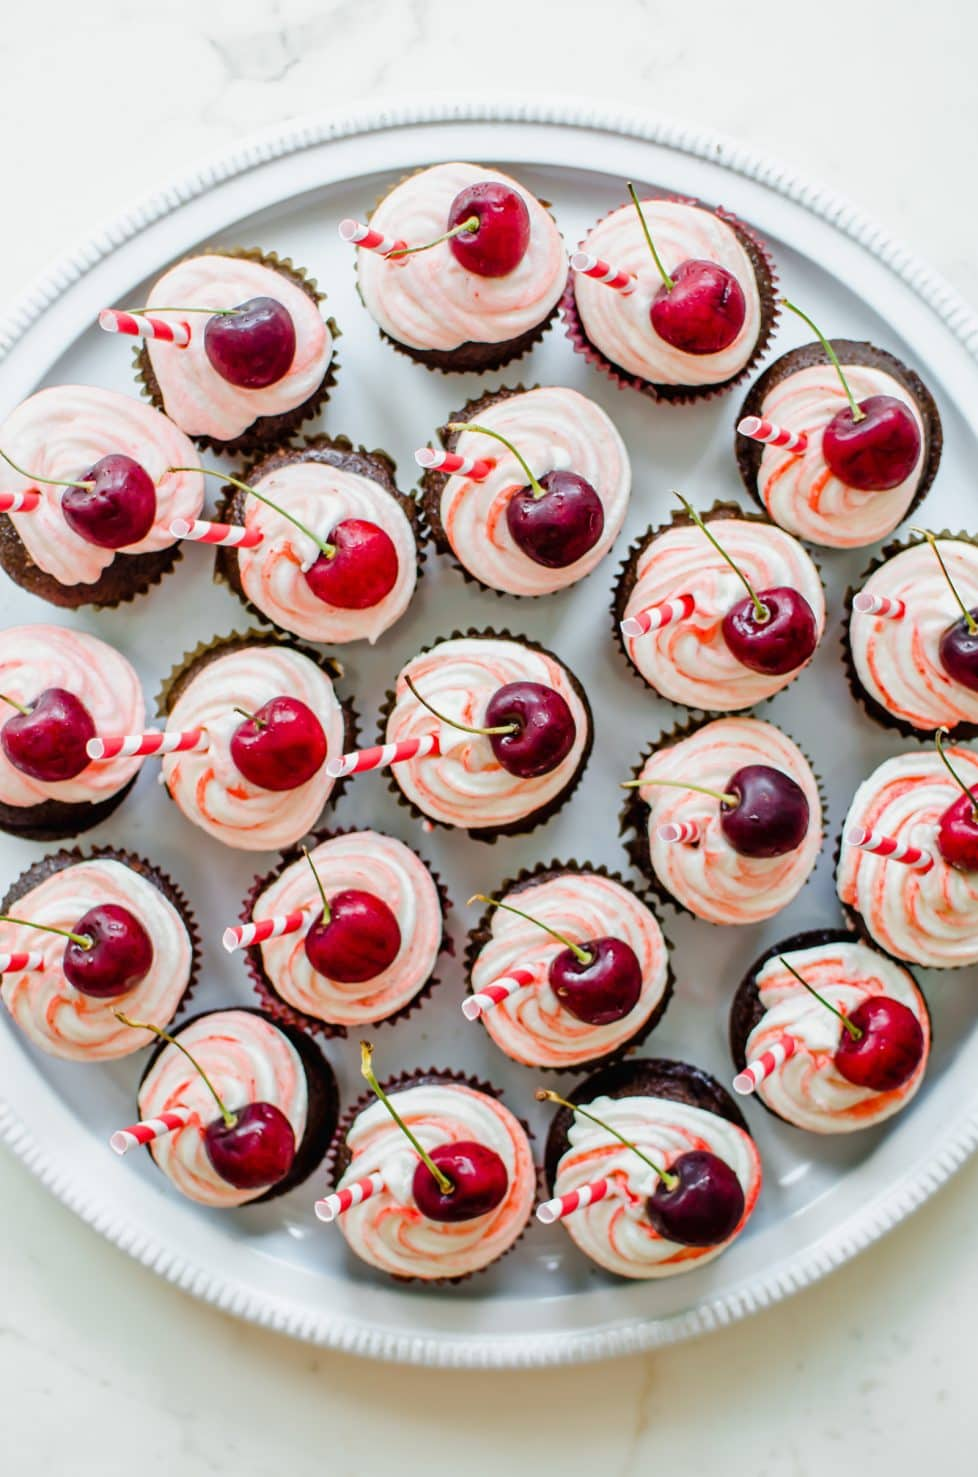 An overhead shot of a large platter of chocolate cupcakes topped with red striped frosting, a cherry, and a red striped paper straw.